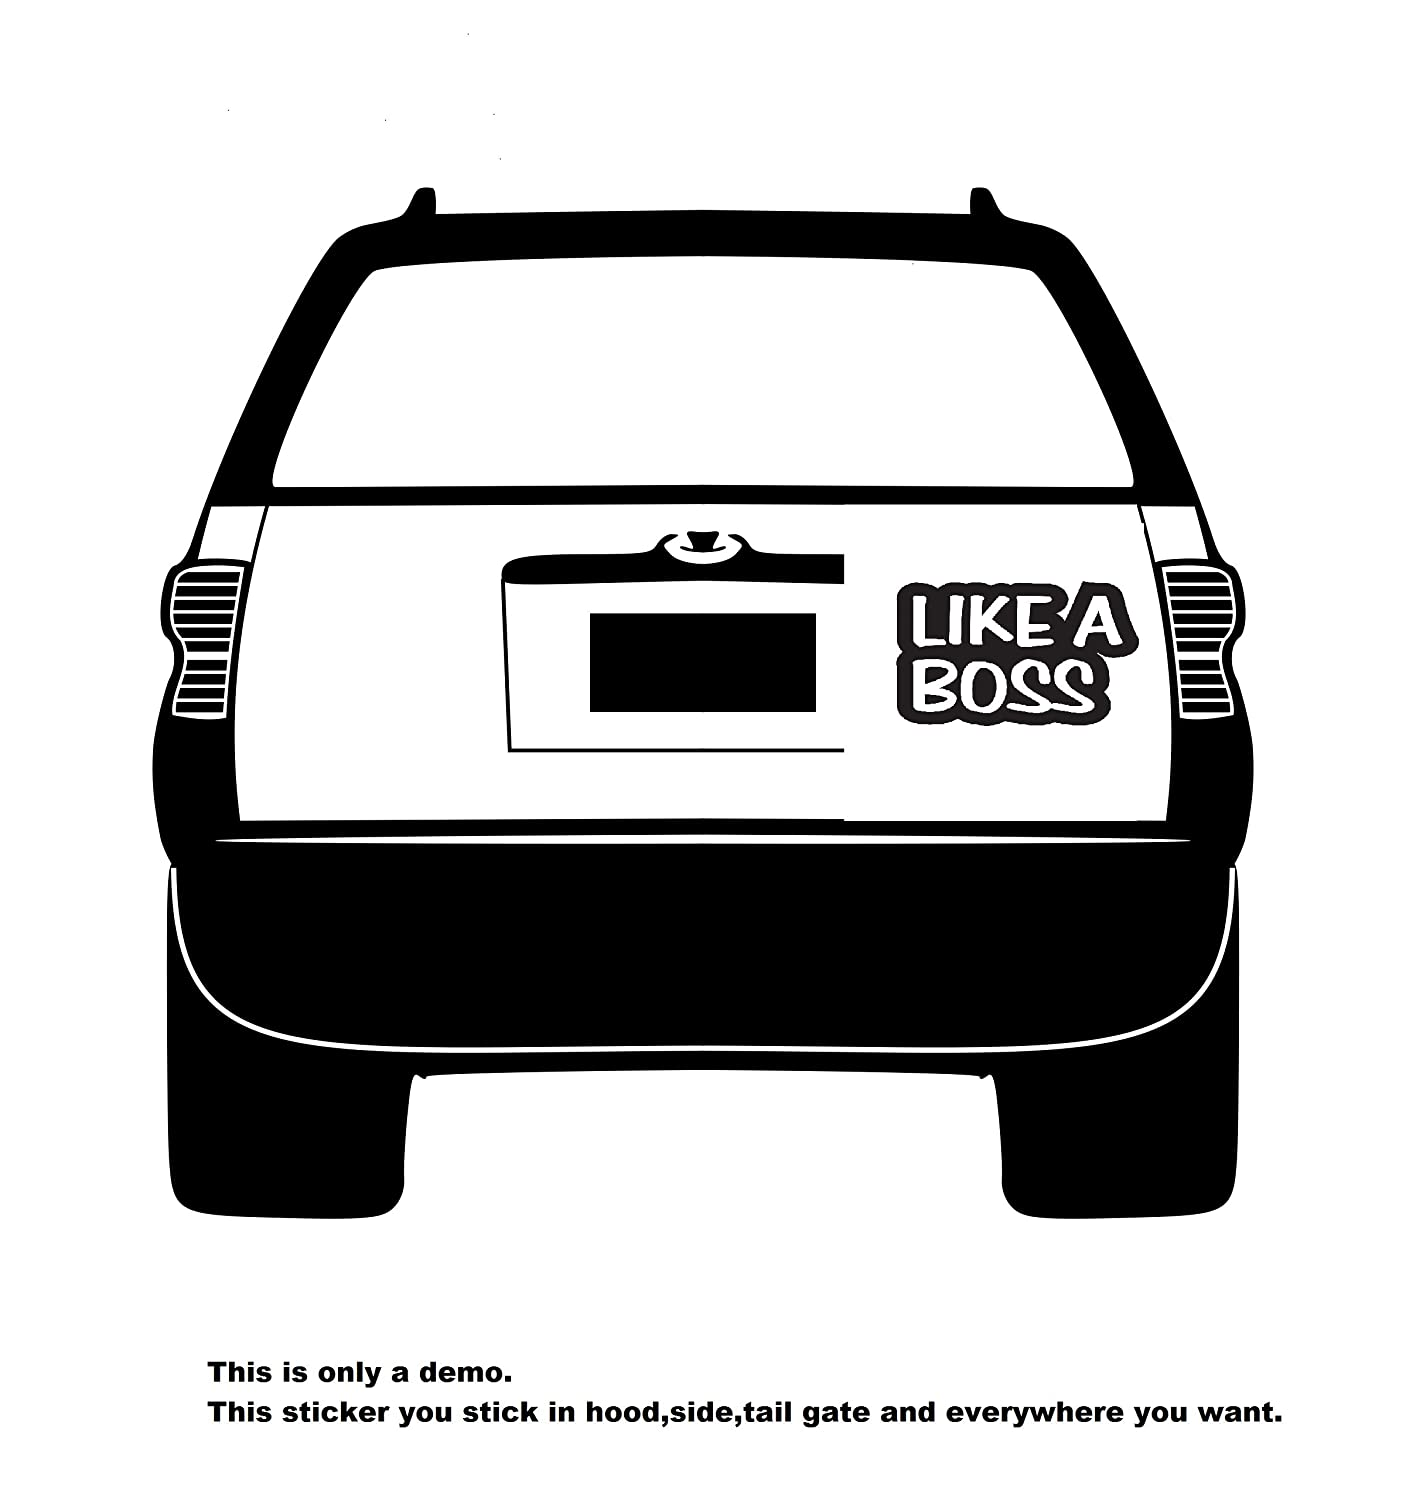 Buy like a boss car decorative sticker 20x12cm online at low prices in india amazon in